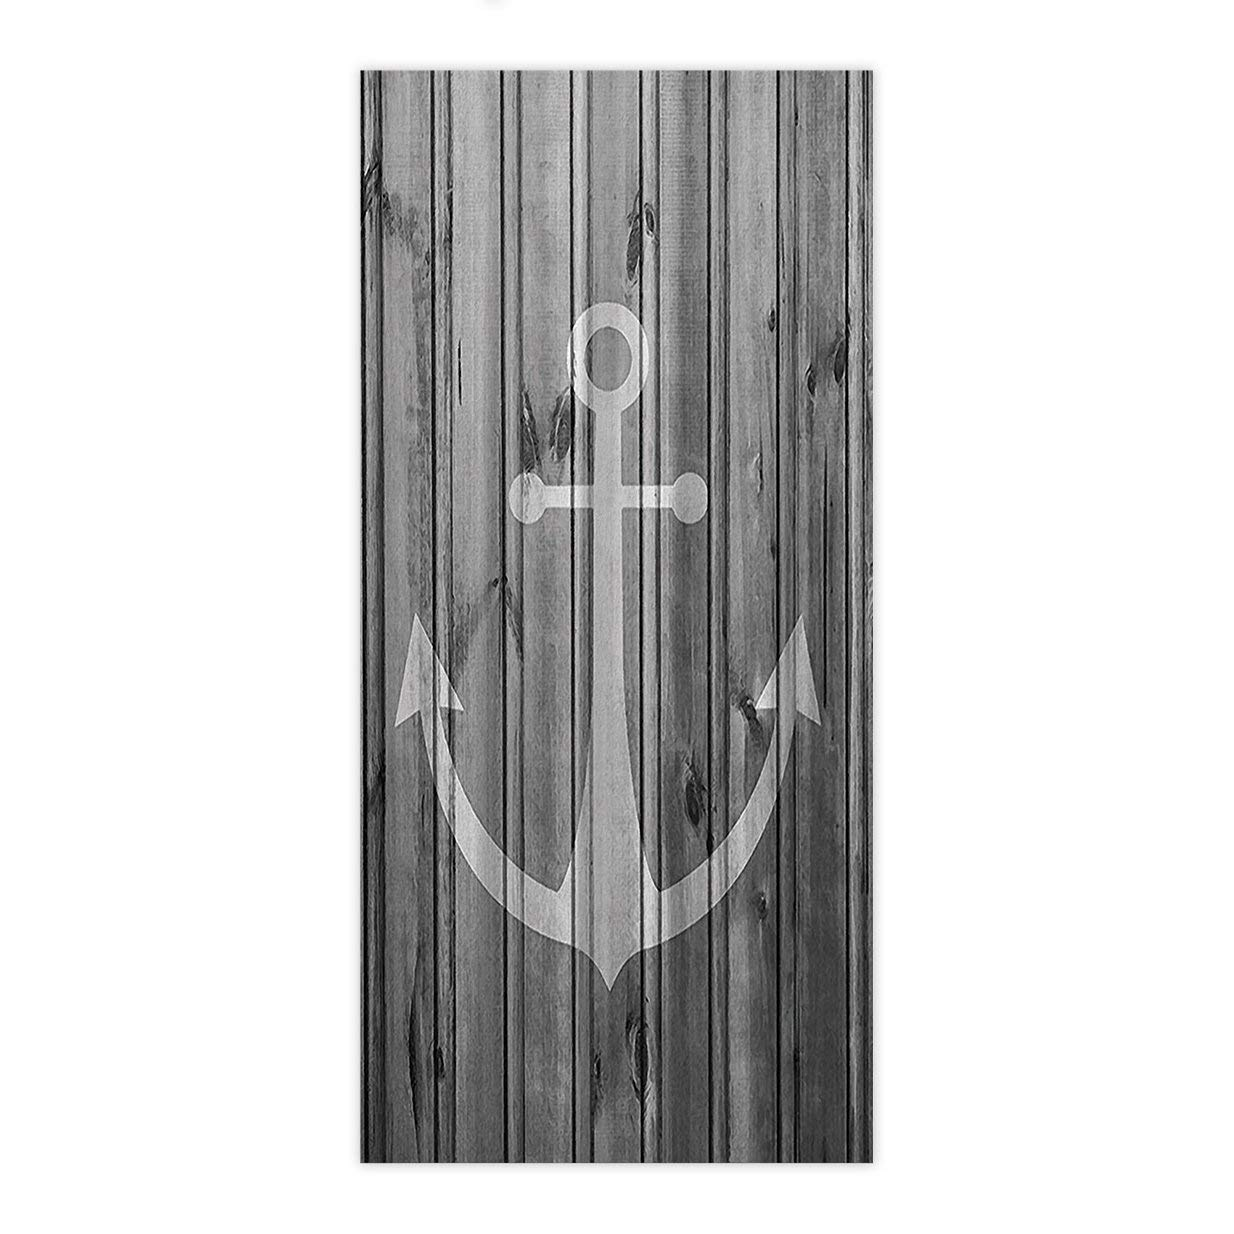 Yaoni Vintage White Nautical Anchor on Gray Wood Print,Beach Towel Bath Towel Bathroom Shower Towel Bath Wrap for Body,Gym,Spa,Home,Hotel Use